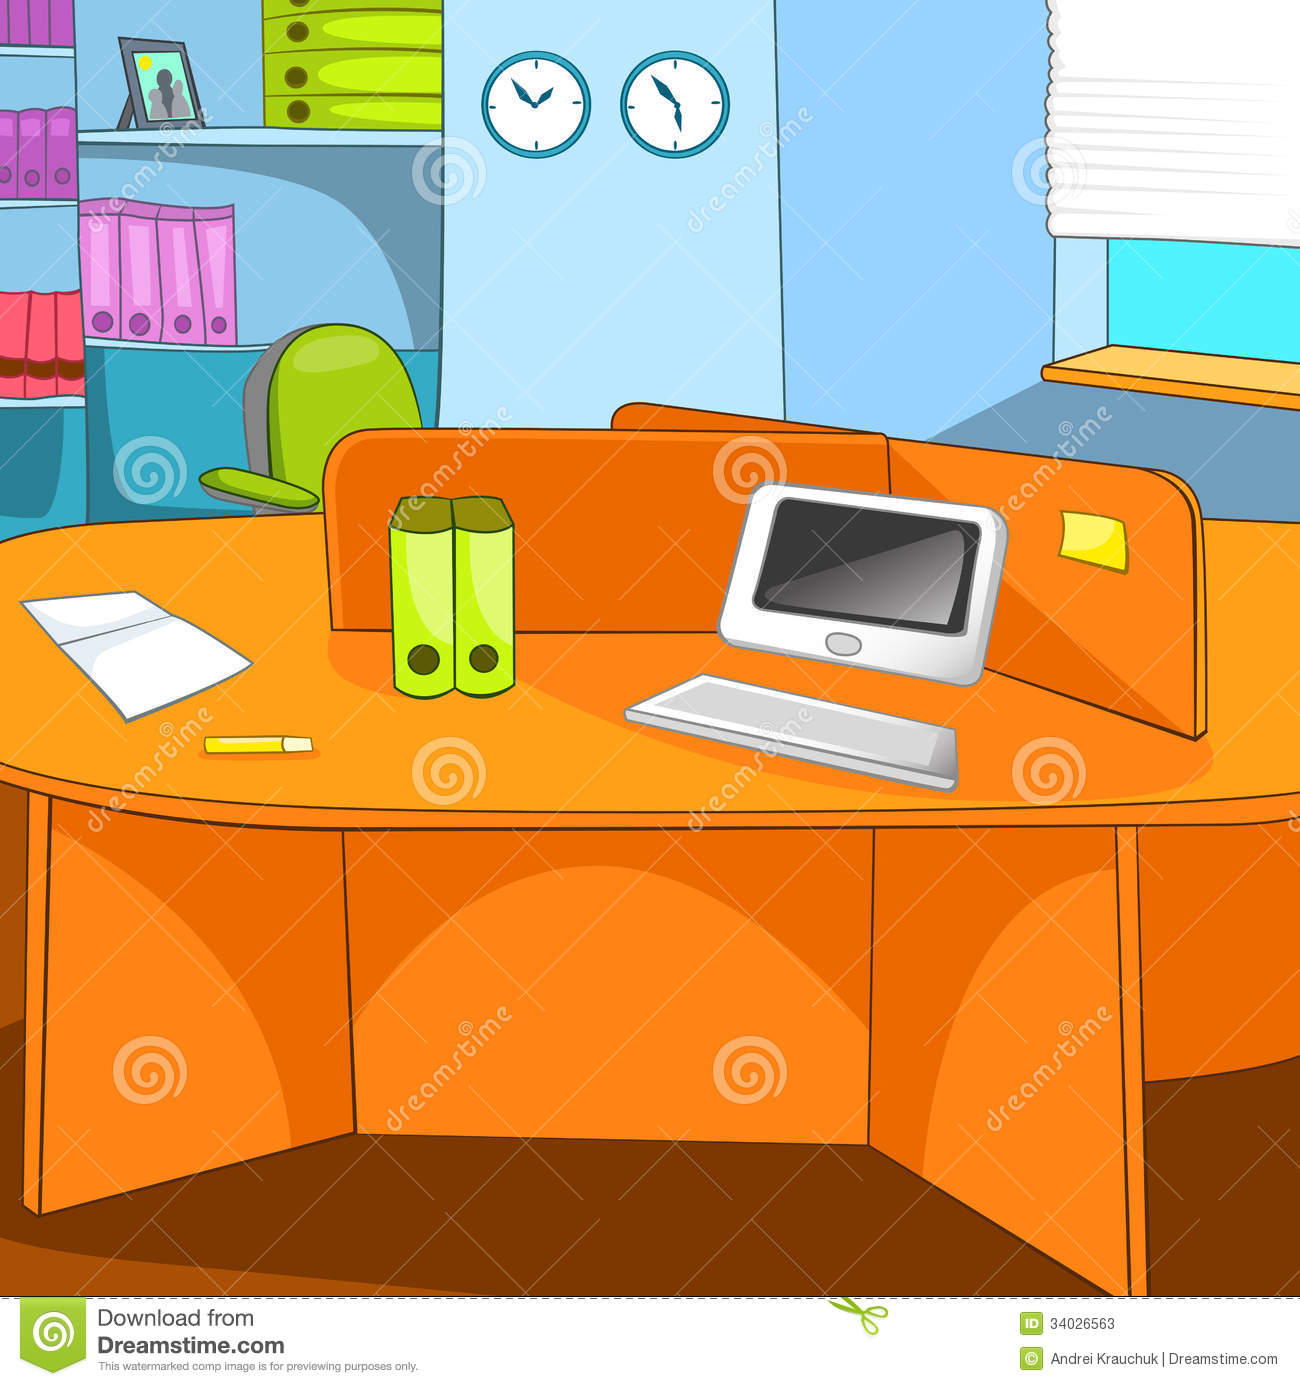 office chair illustration fancy dining chairs place stock vector. image of working, paper, display - 34026563